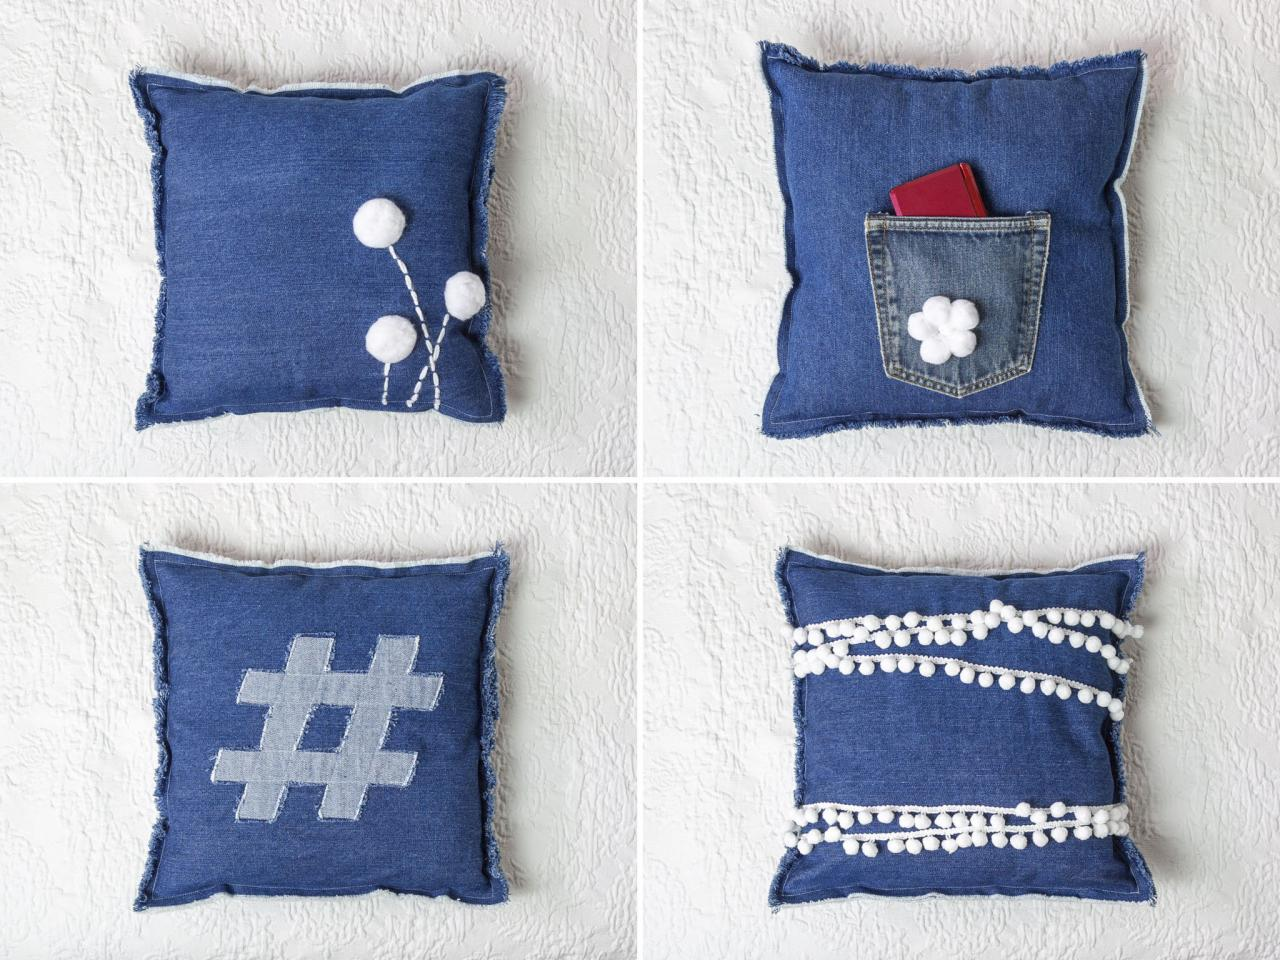 Upcycle Jeans Into Teen Bedroom Pillows Diy Network Blog